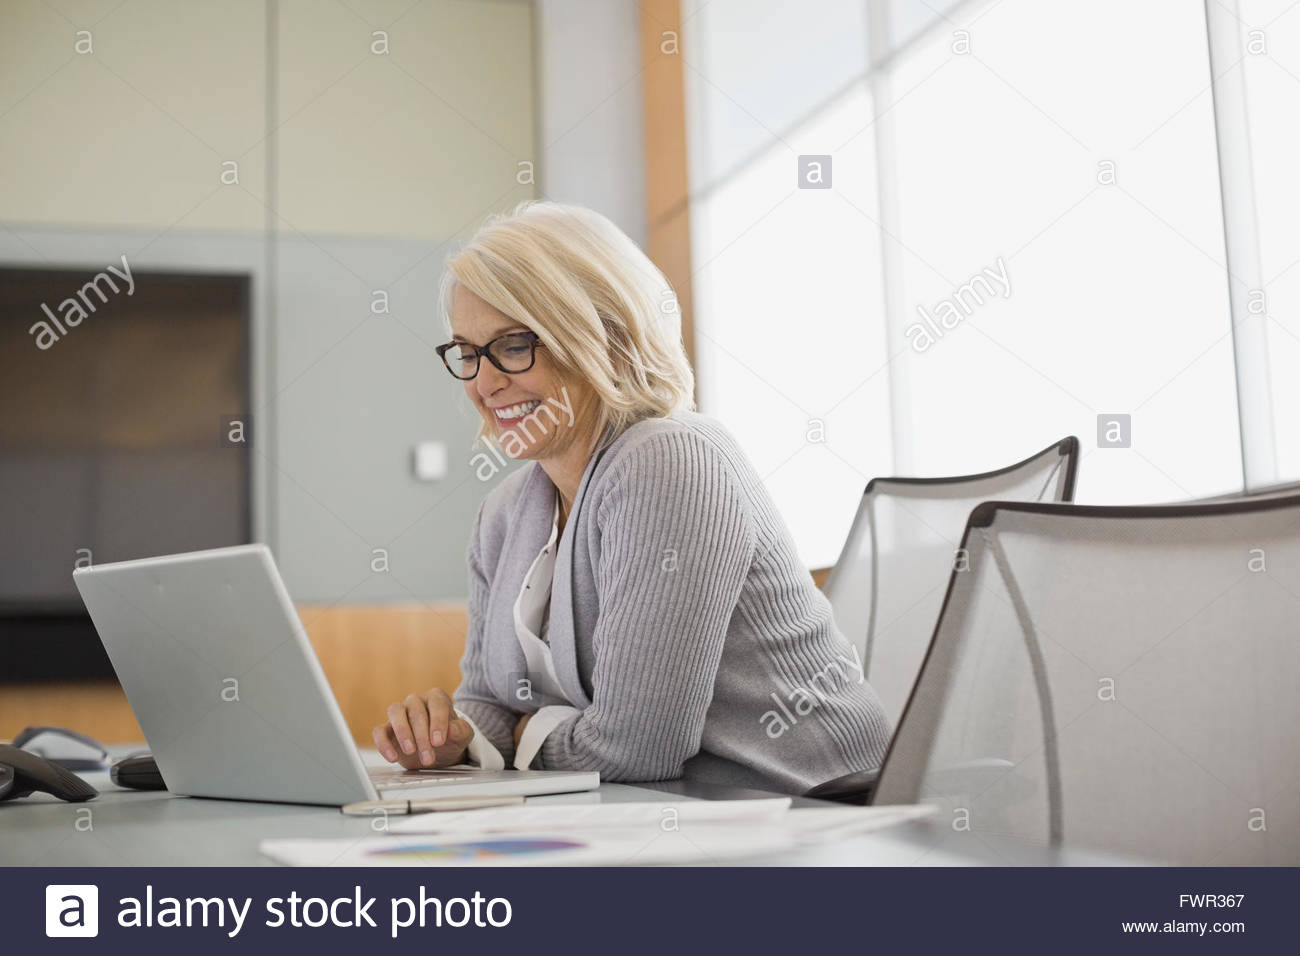 Businesswoman using laptop in boardroom - Stock Image